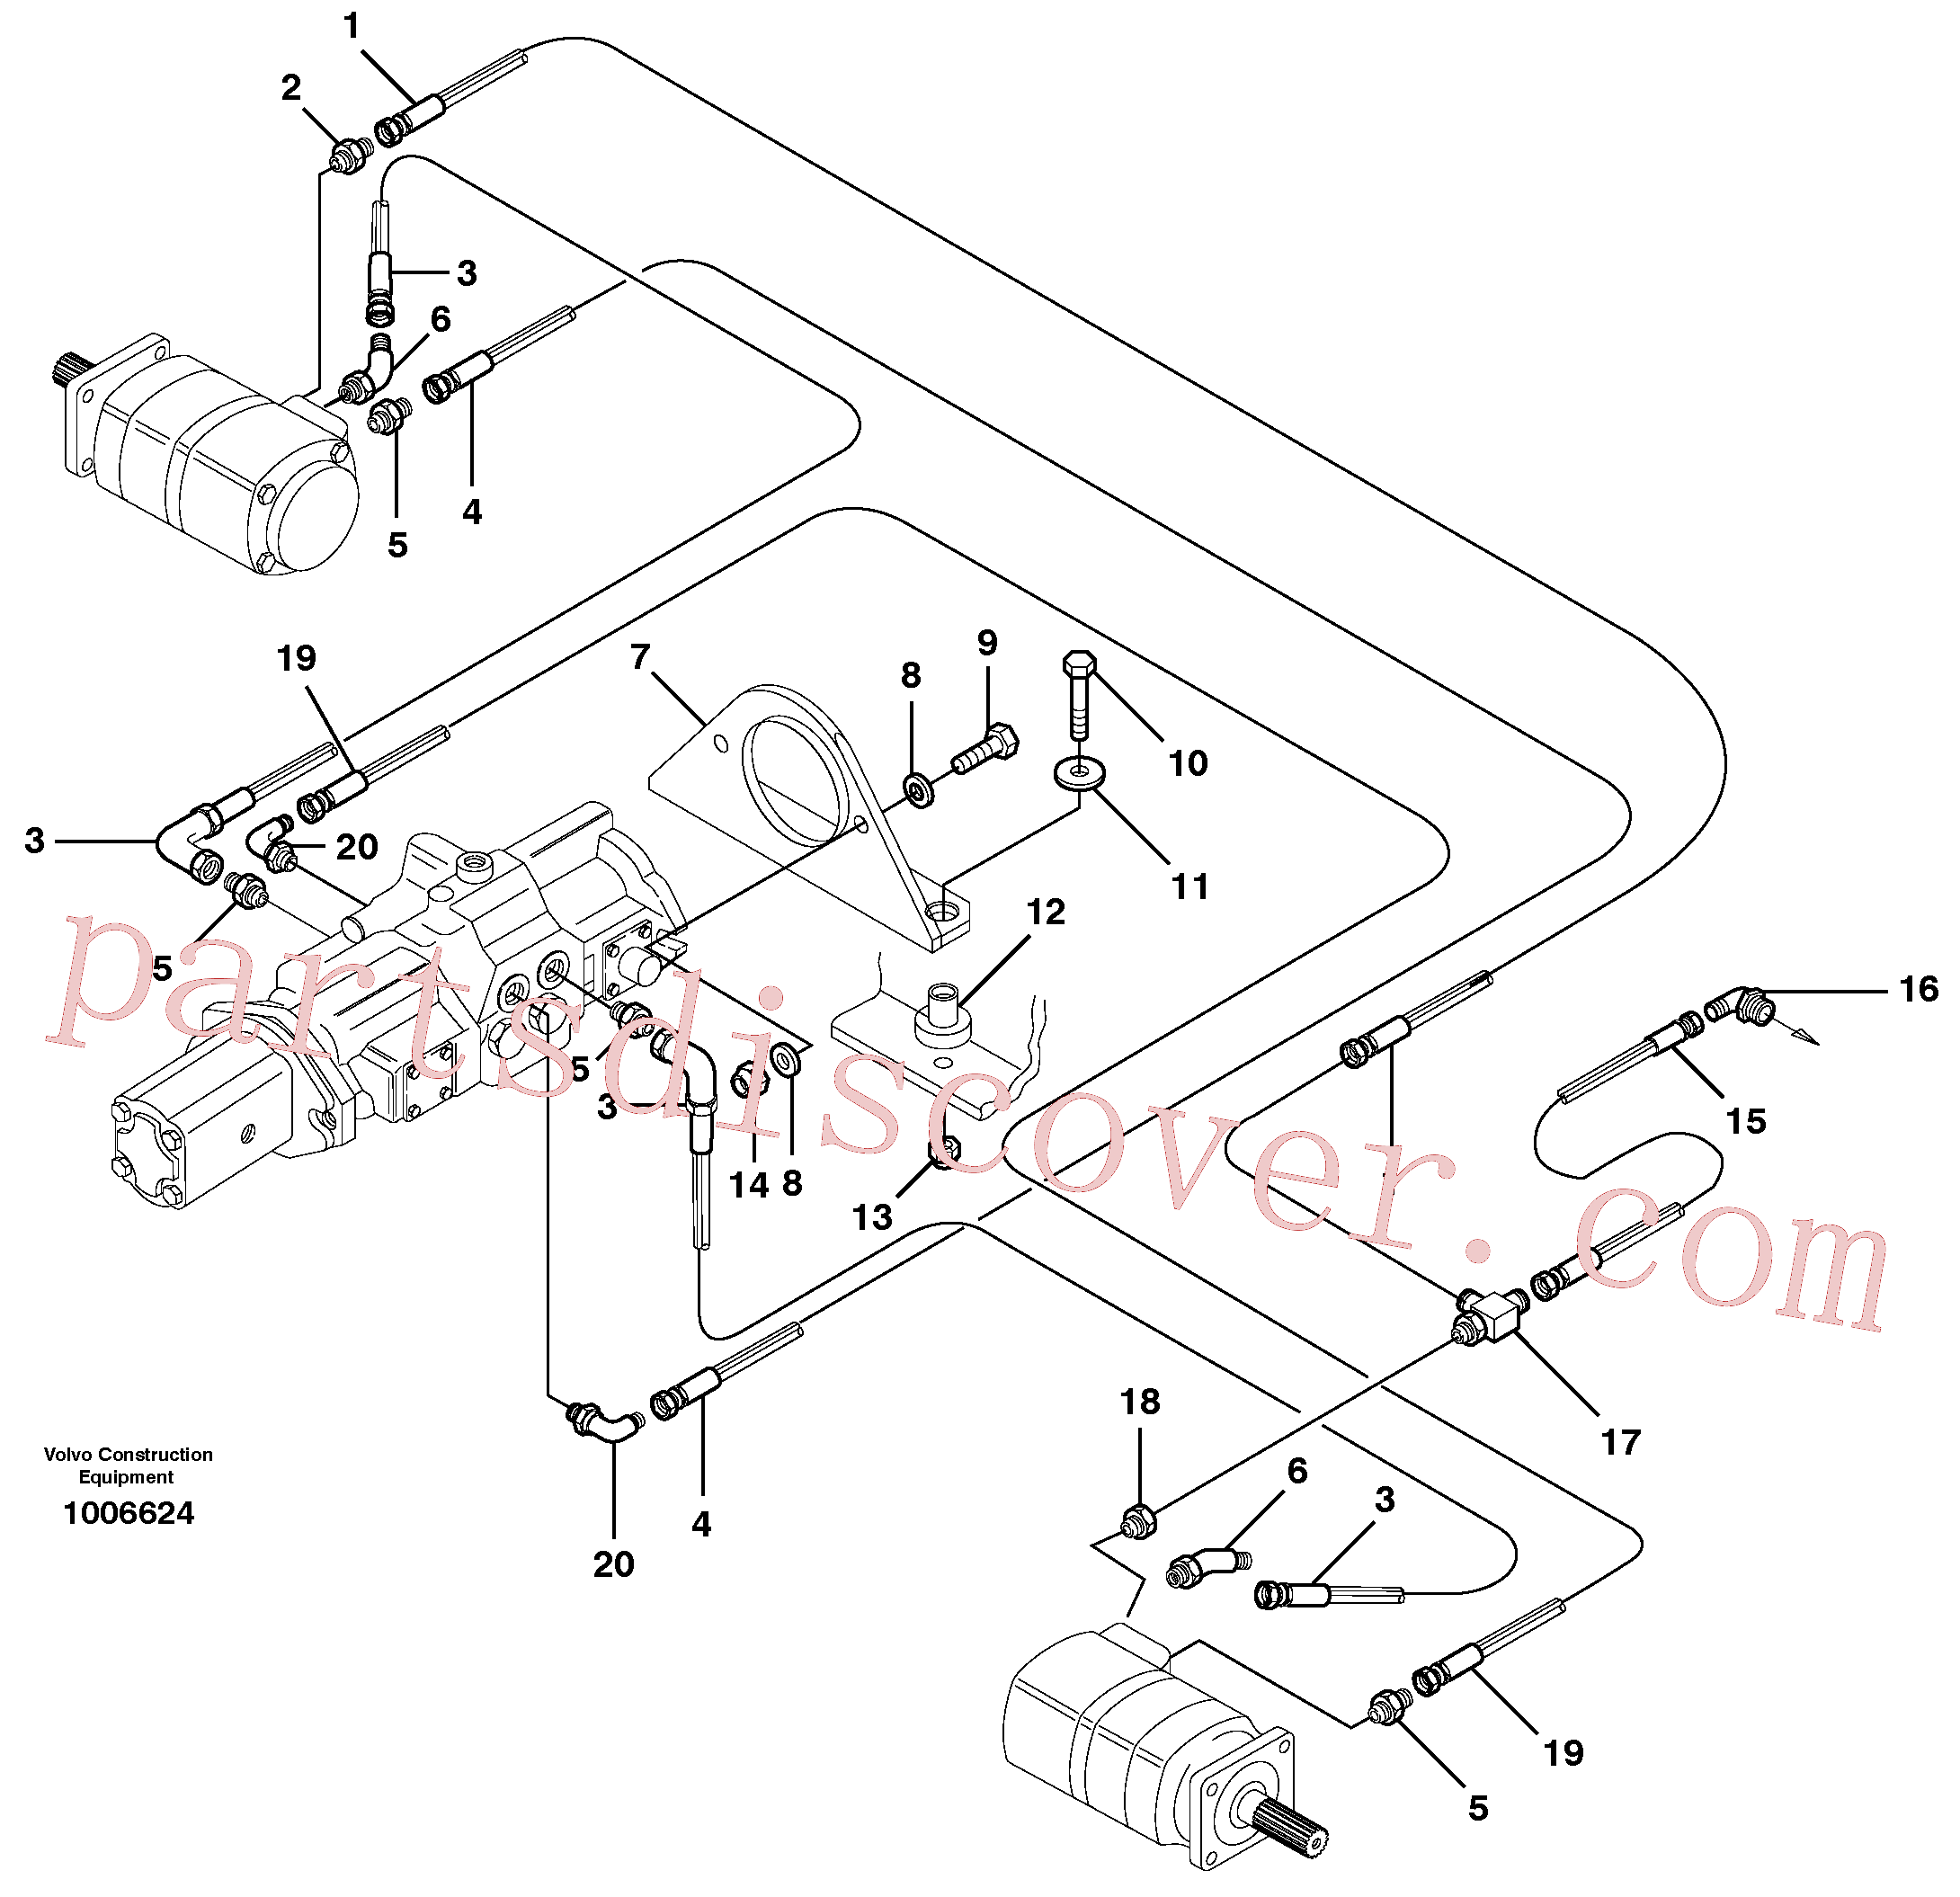 VOE11850571 for Volvo Hydraulic system Transport(1006624 assembly)